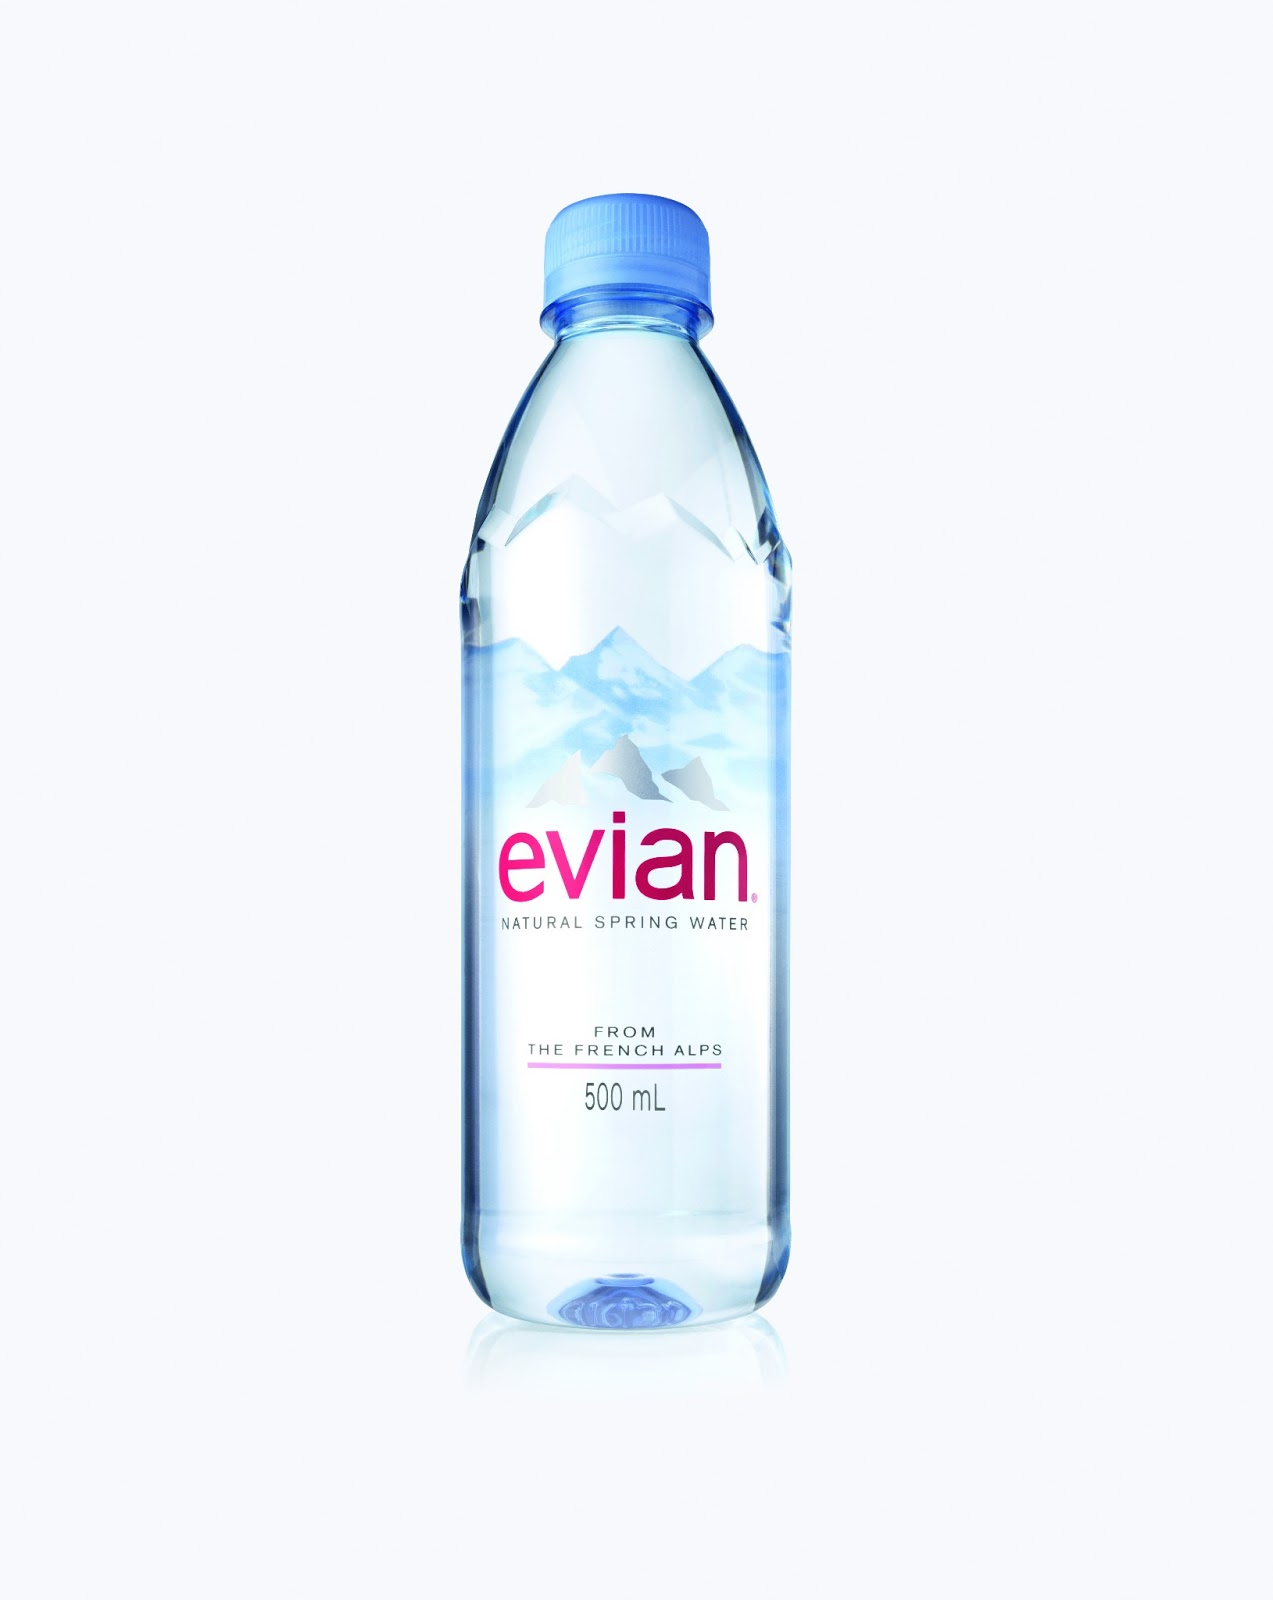 Evian Natural Spring Water Debuts New Bottle Design On